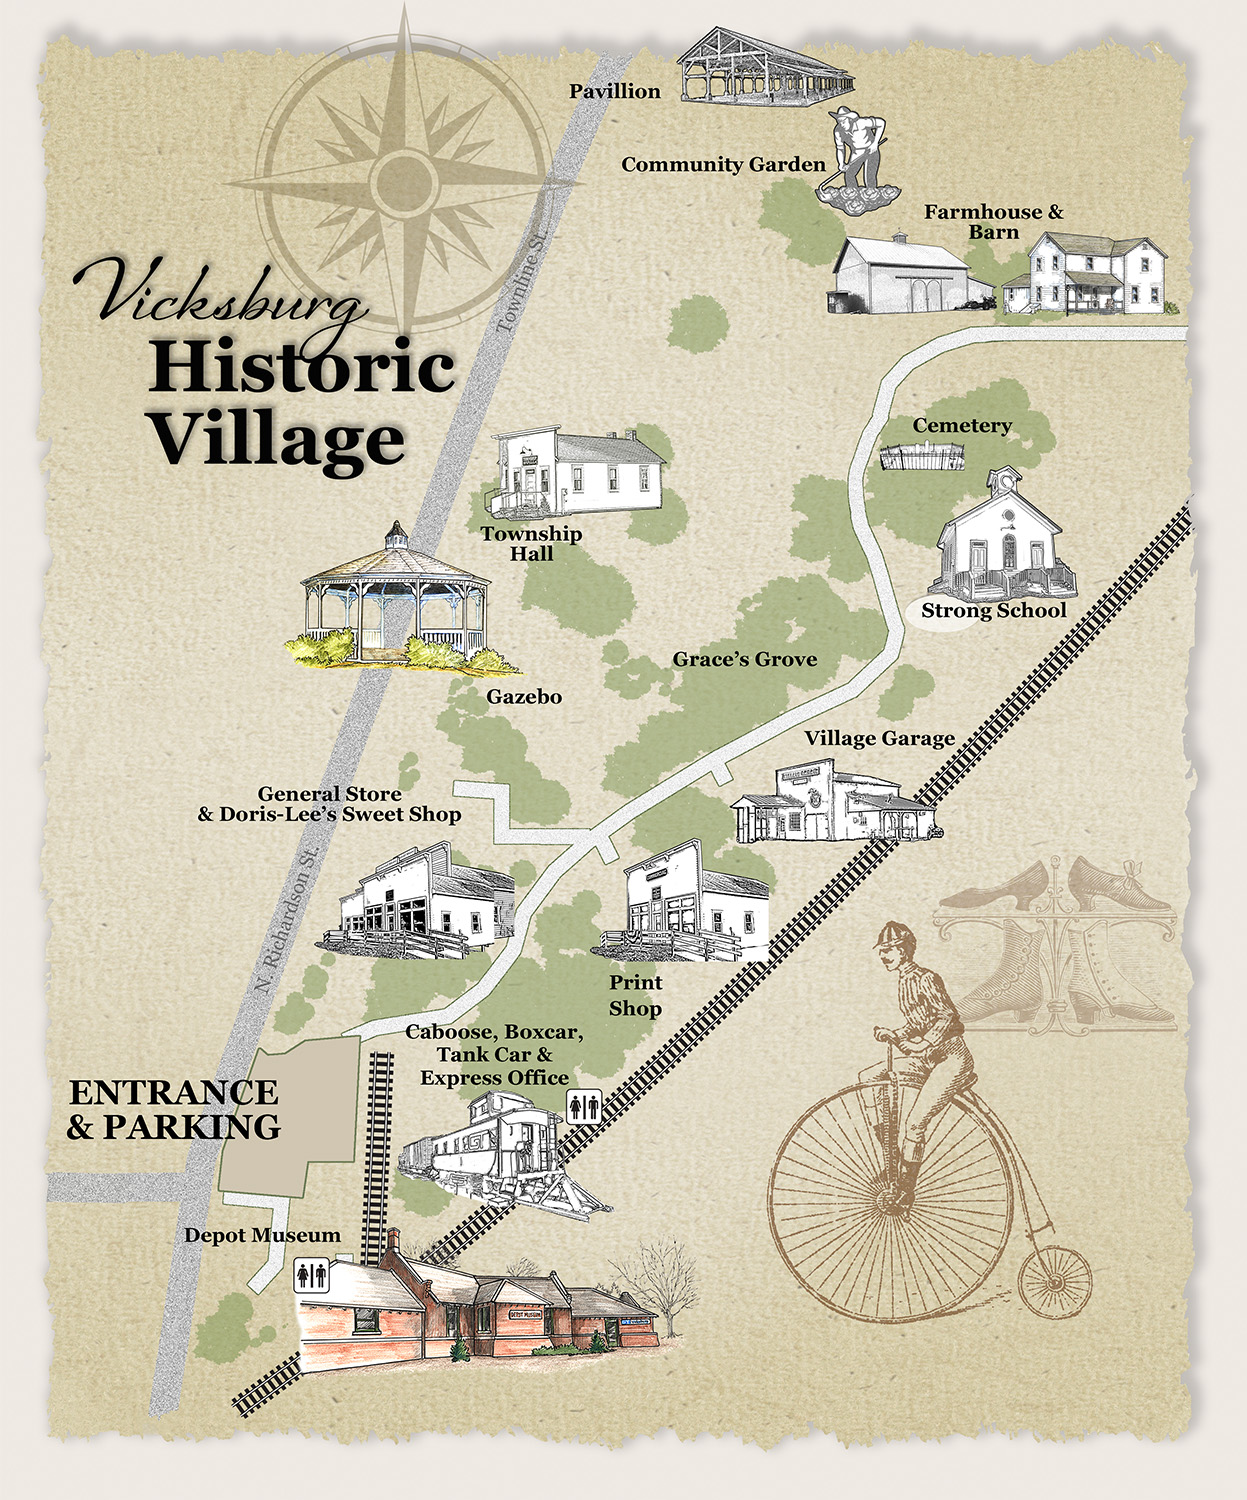 Map of Vicksburg Historic Village